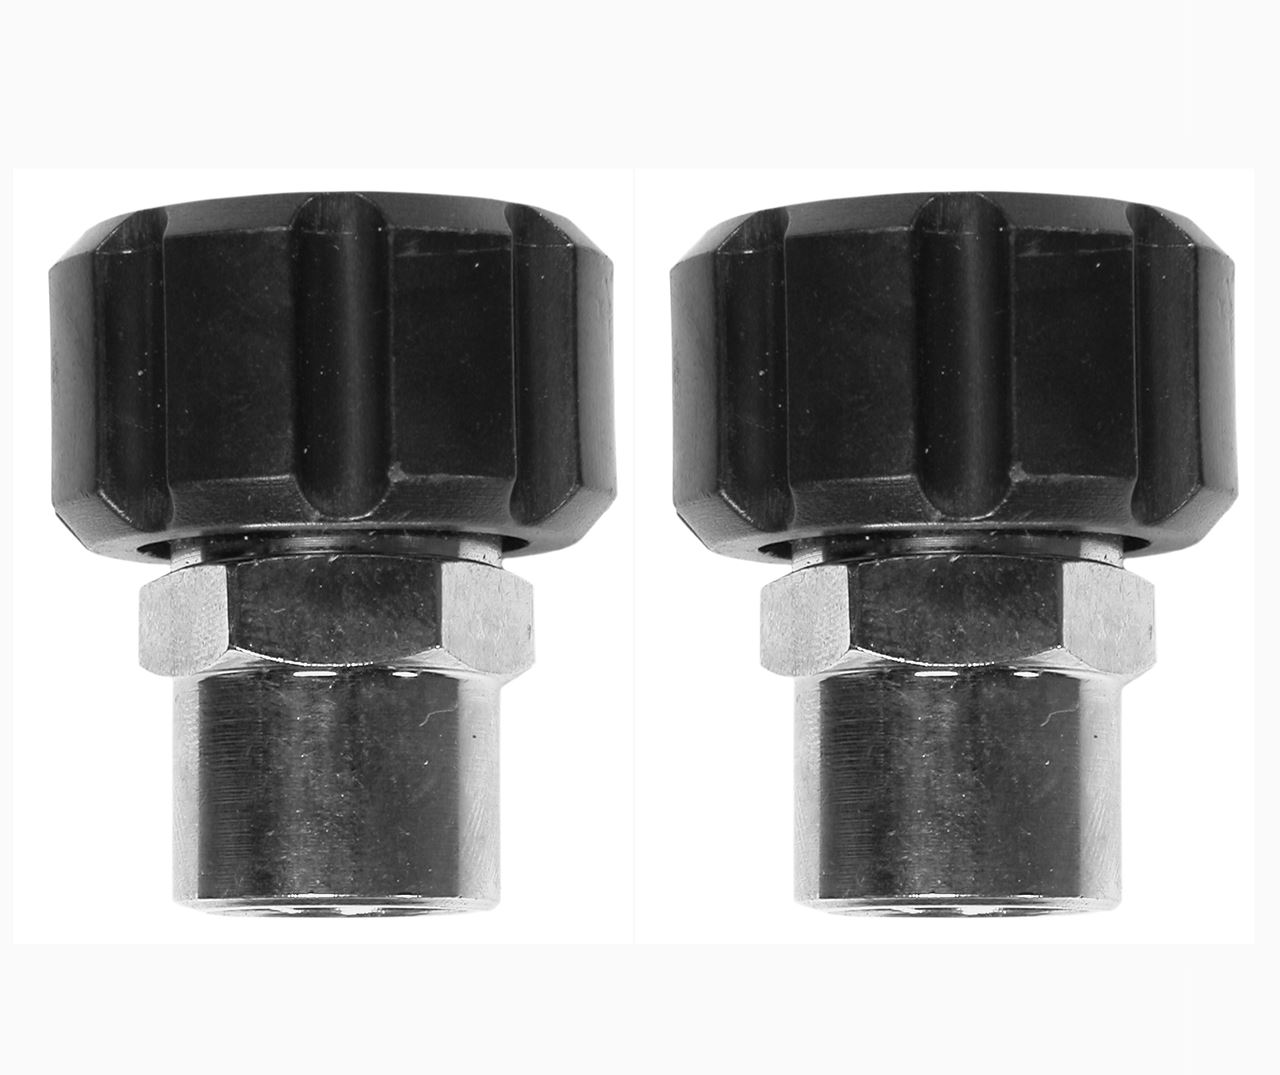 Mm twist connect fittings for pressure washer hose ebay